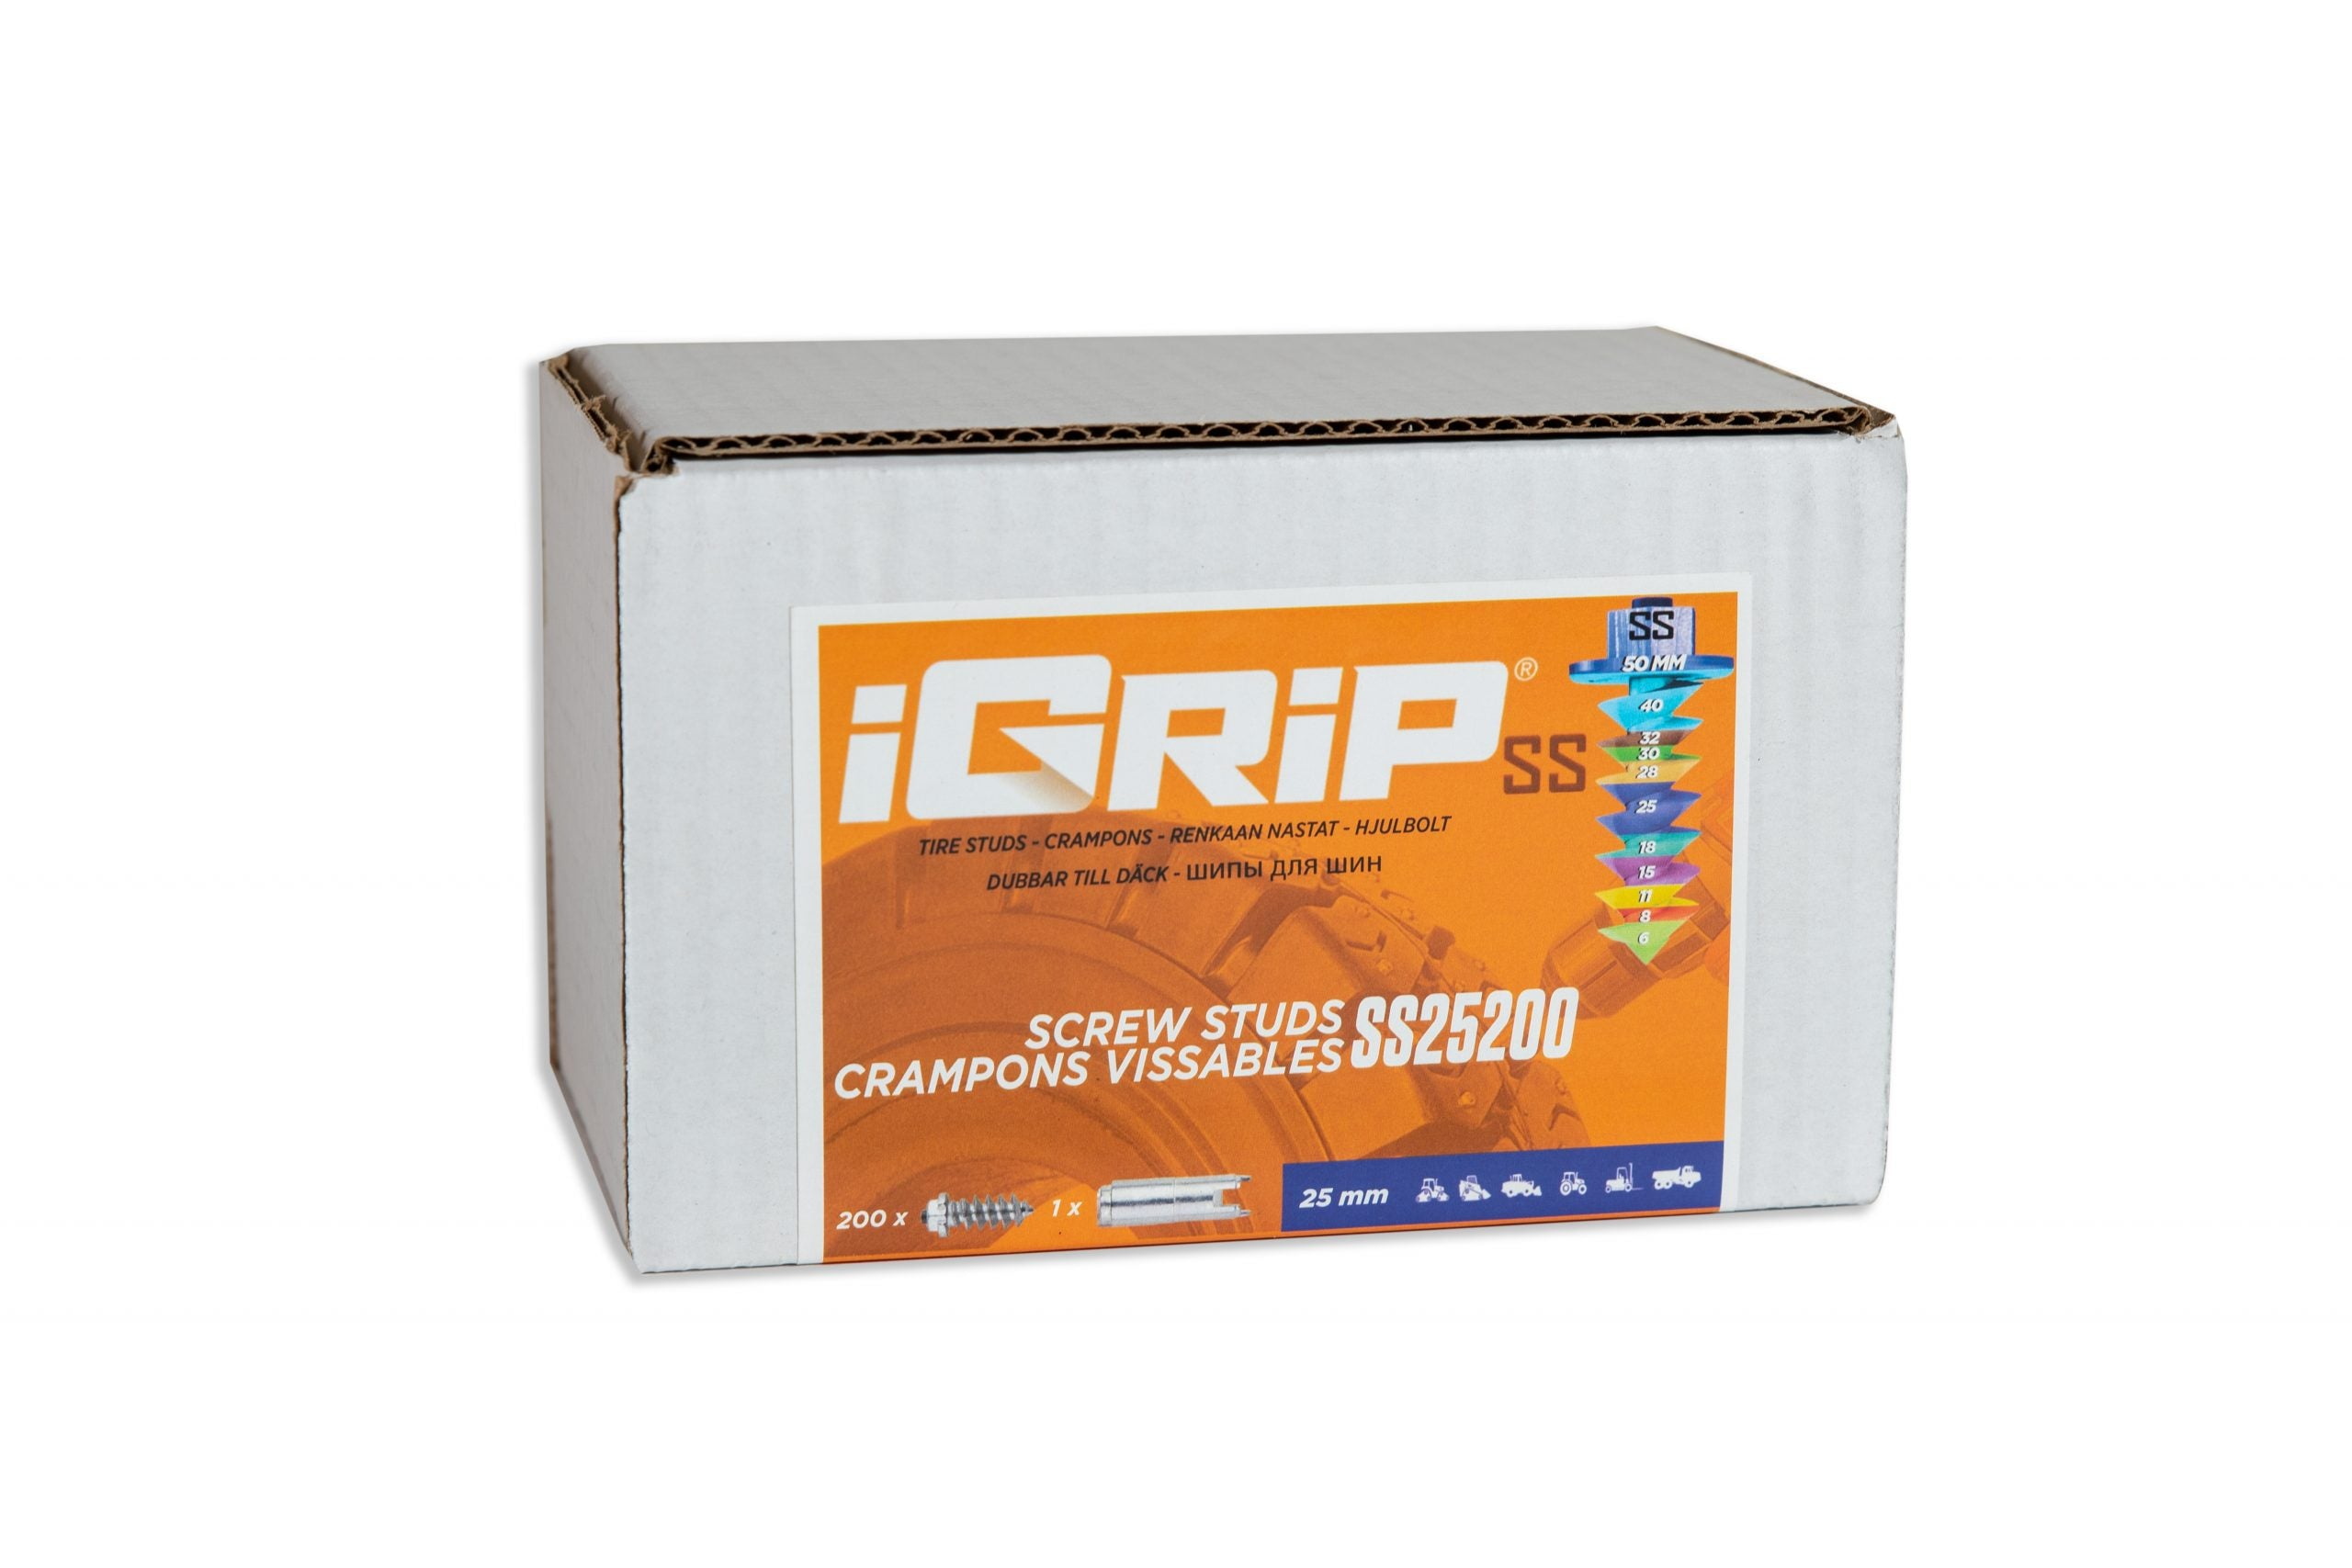 SS-25 Shouldered iGrip Tire Studs